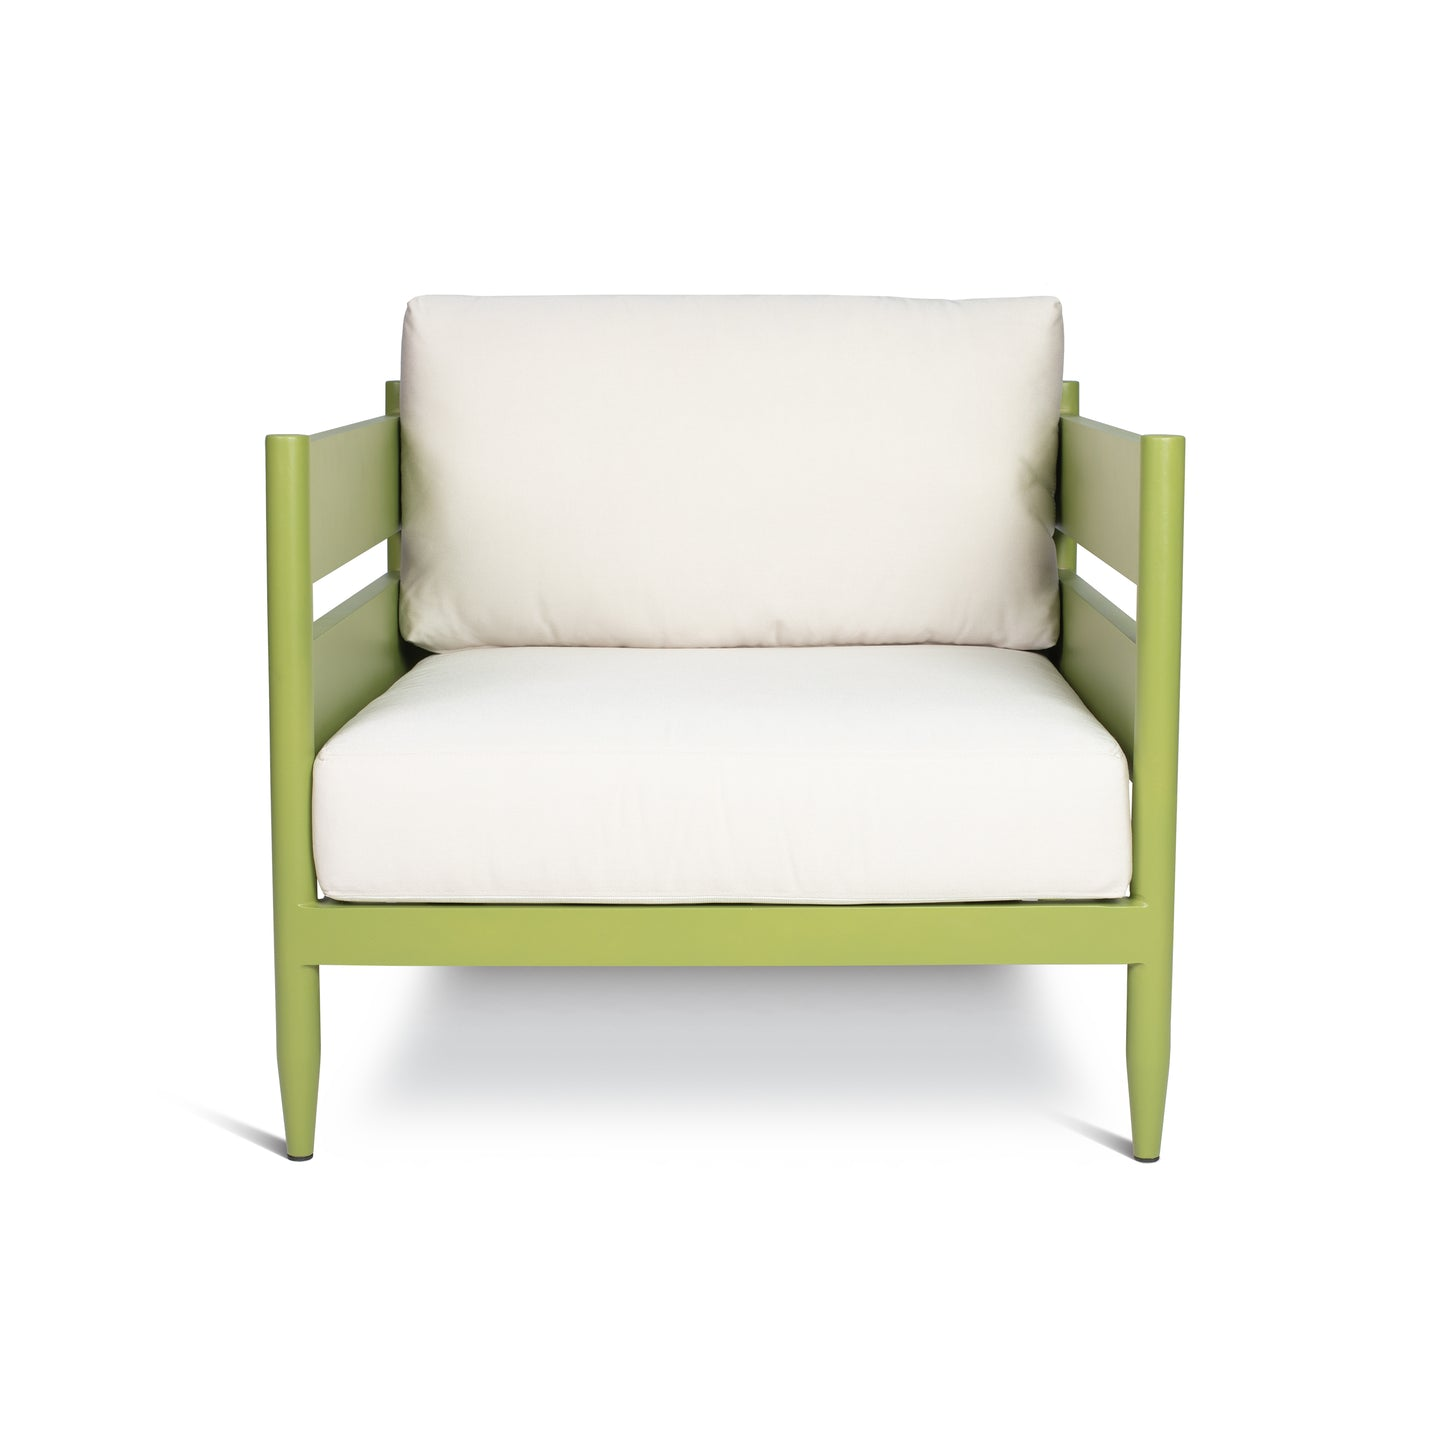 VINCE LOUNGE CHAIR IN LICHEN